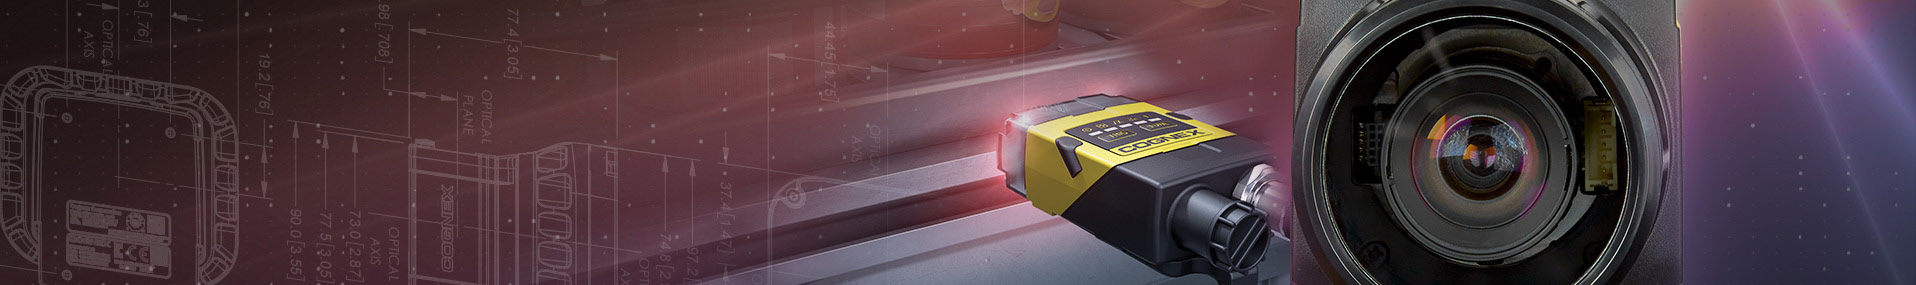 Blog banner of Cognex small Dataman and up close lens